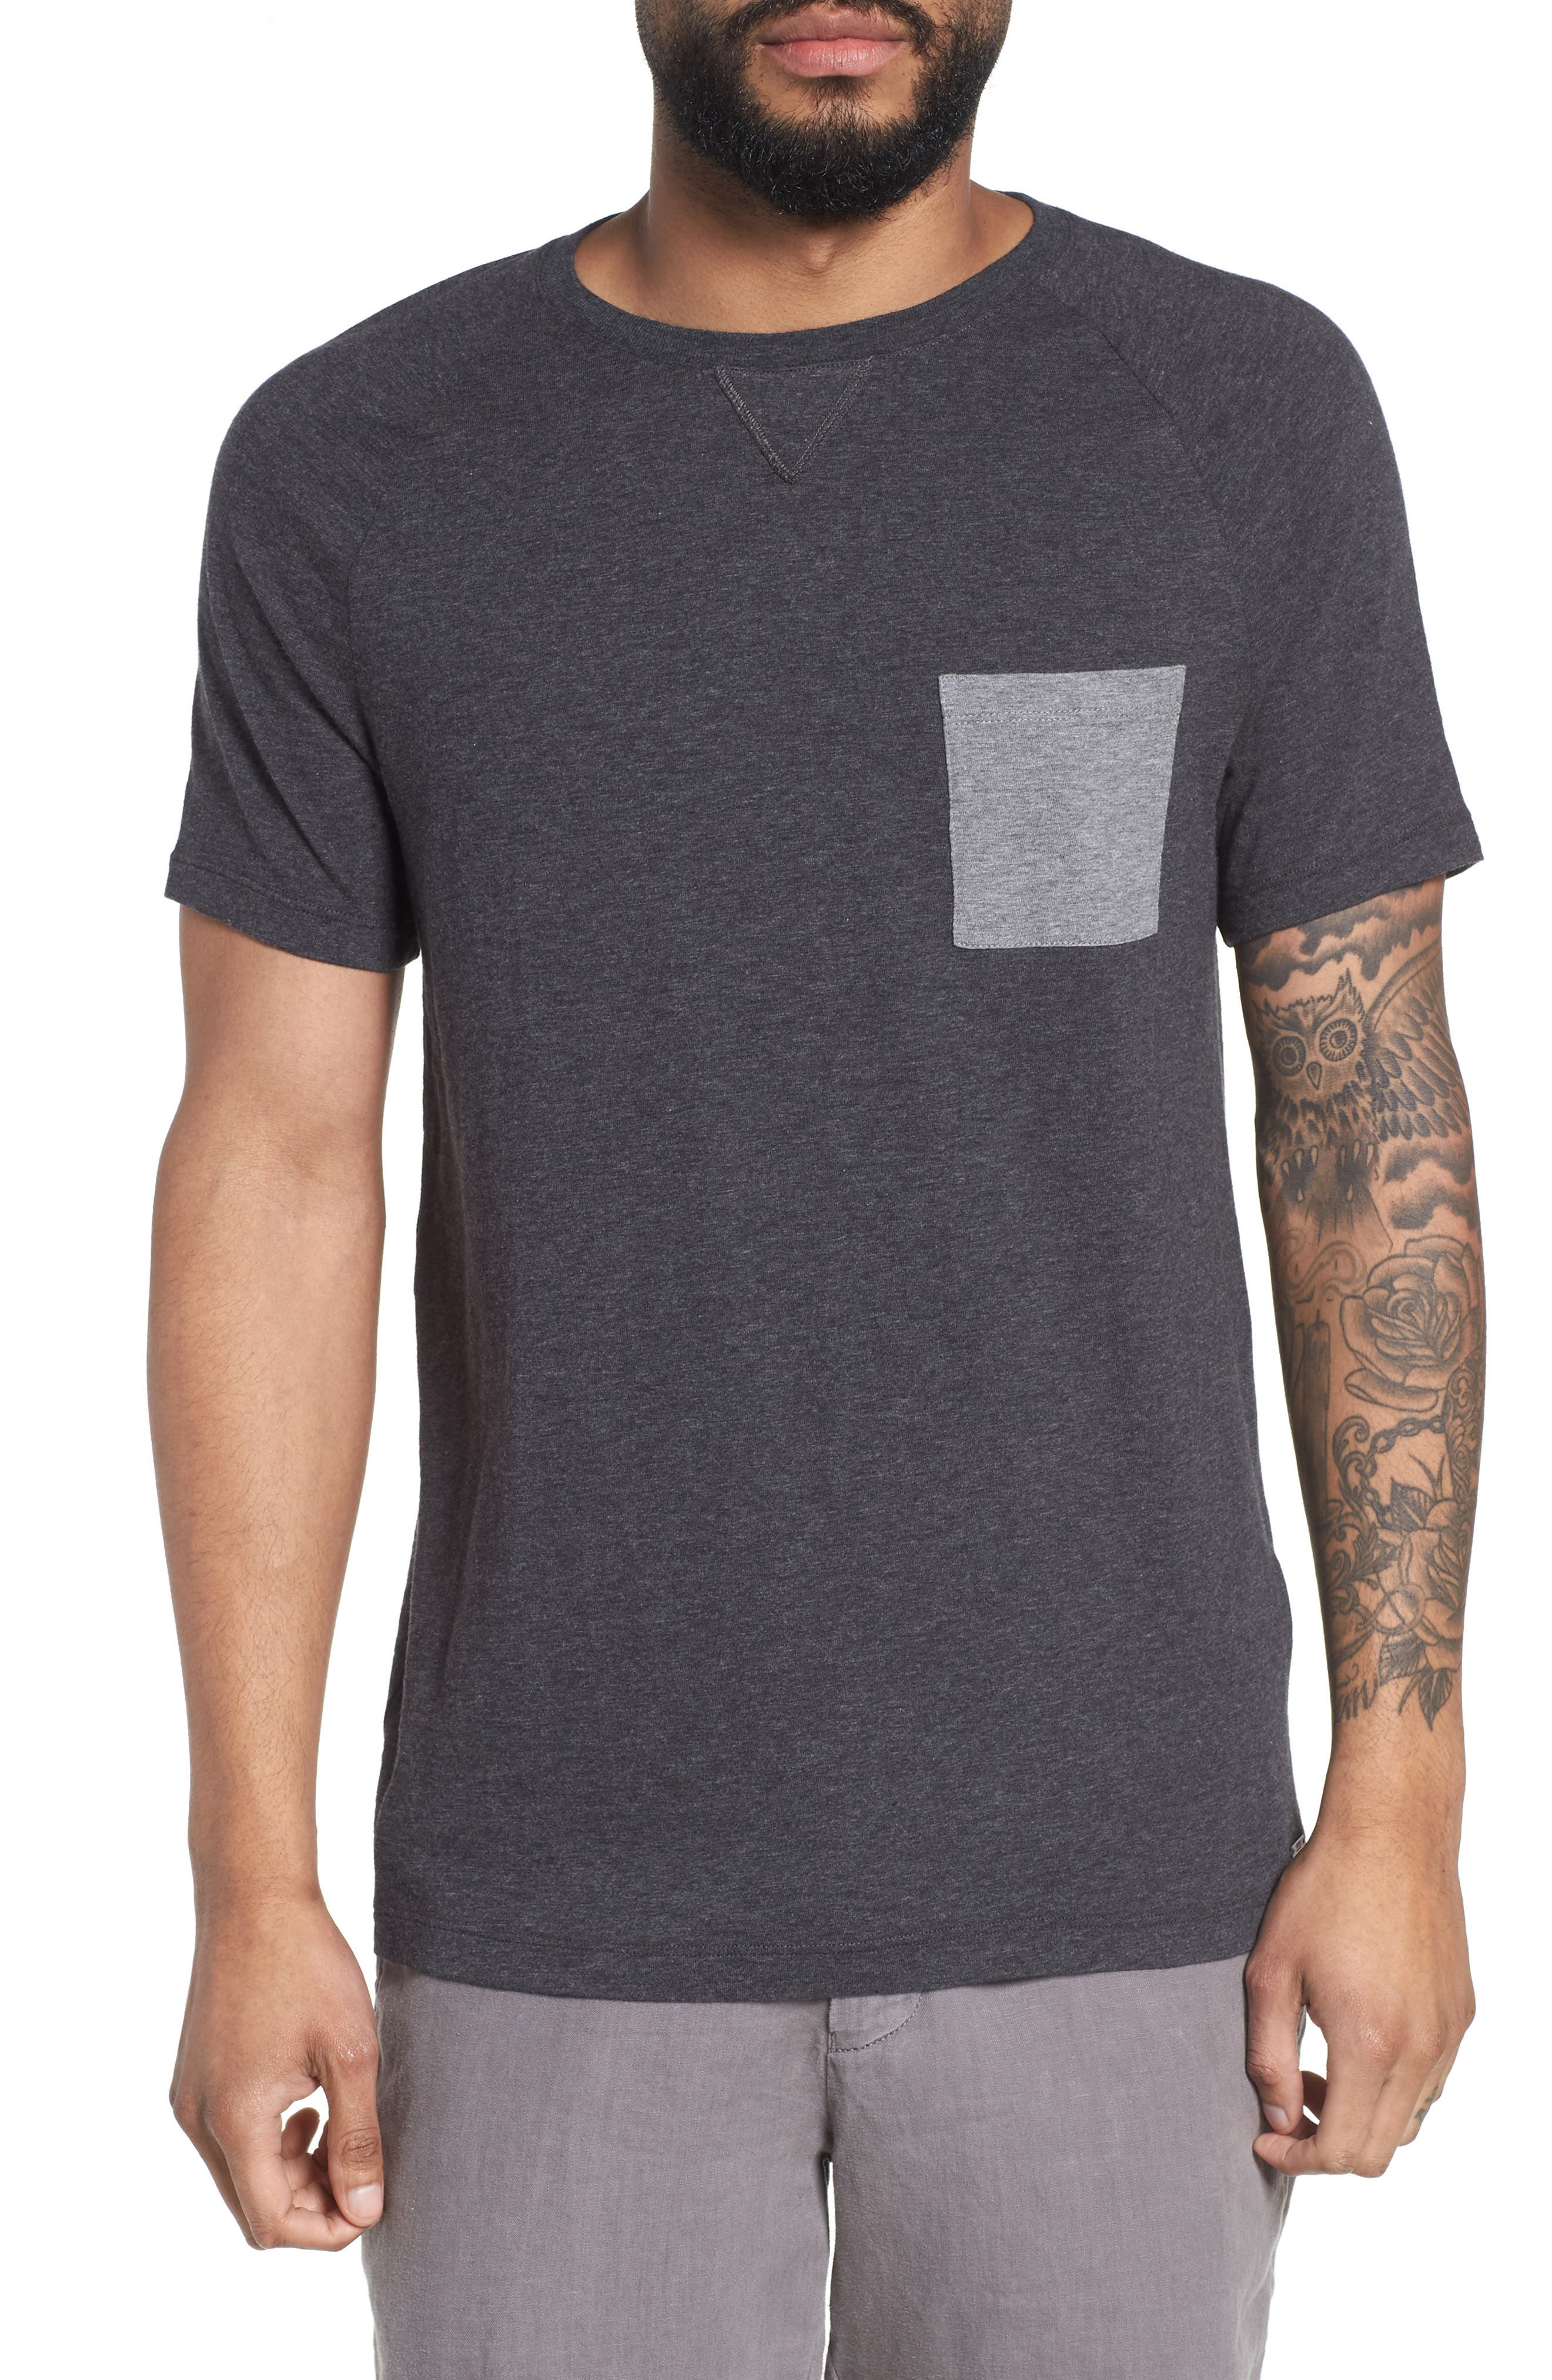 Tessler Slim Fit Pocket T-Shirt,                         Main,                         color, 001